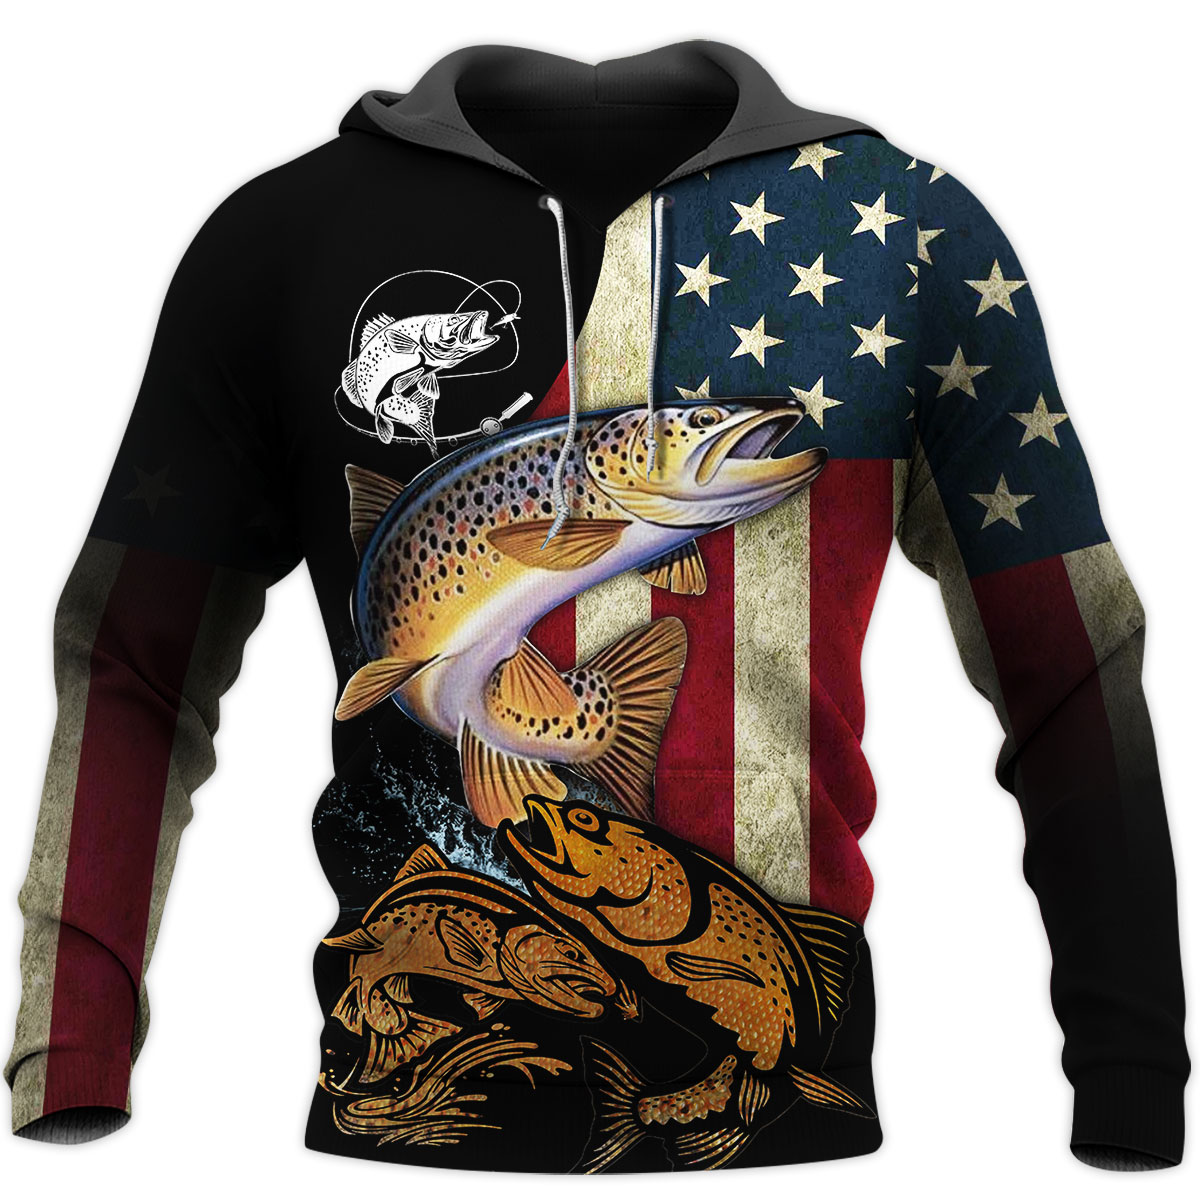 Gopostore_Fishing_LOVE-BROWN-TROUT_SHU1706014_3dc_hoodie.jpg